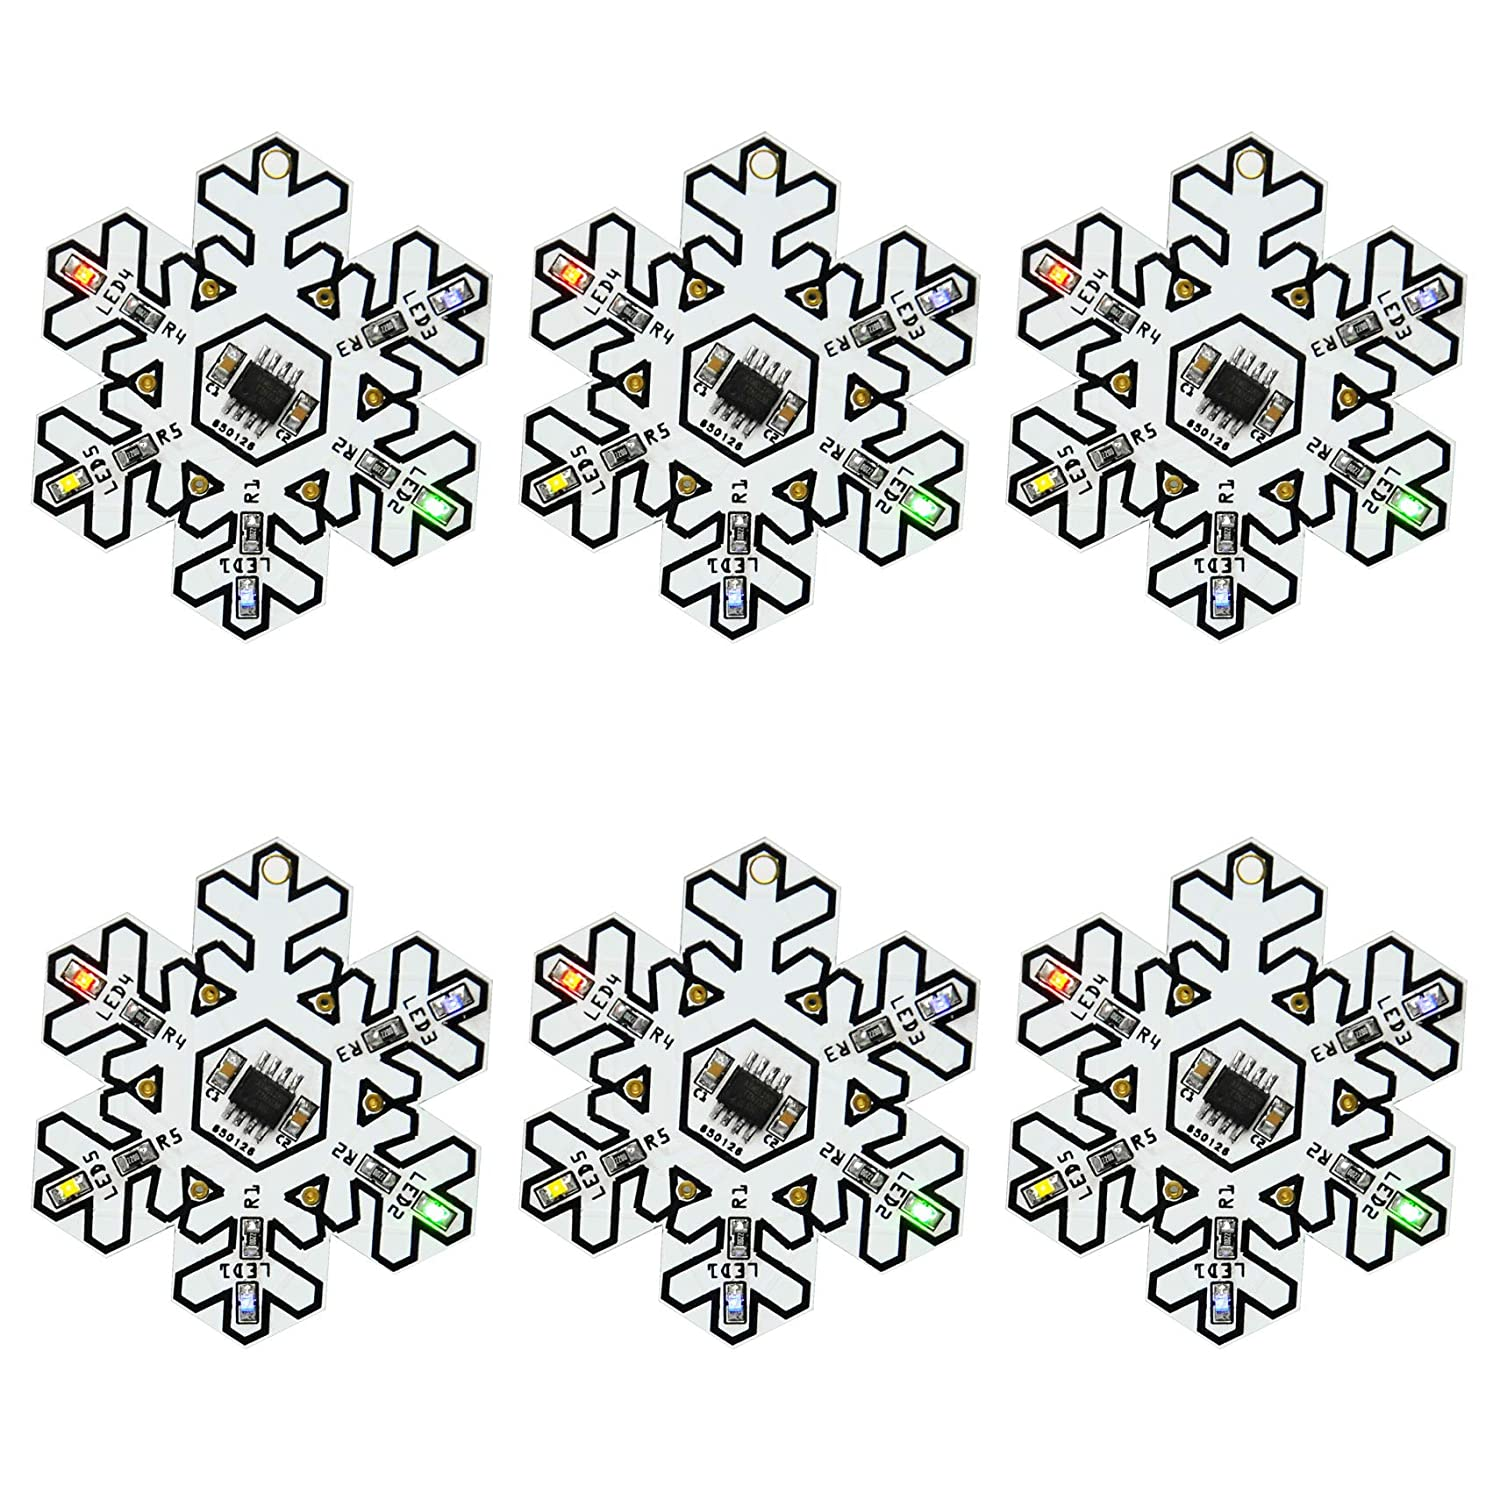 Gikfun Snowflake Shape SMD SMT Welding Practice Soldering Skill Training Board DIY Kit for Arduino Christmas Tree Decoration Gift (Case Pack of 6) GK1018U Esooho